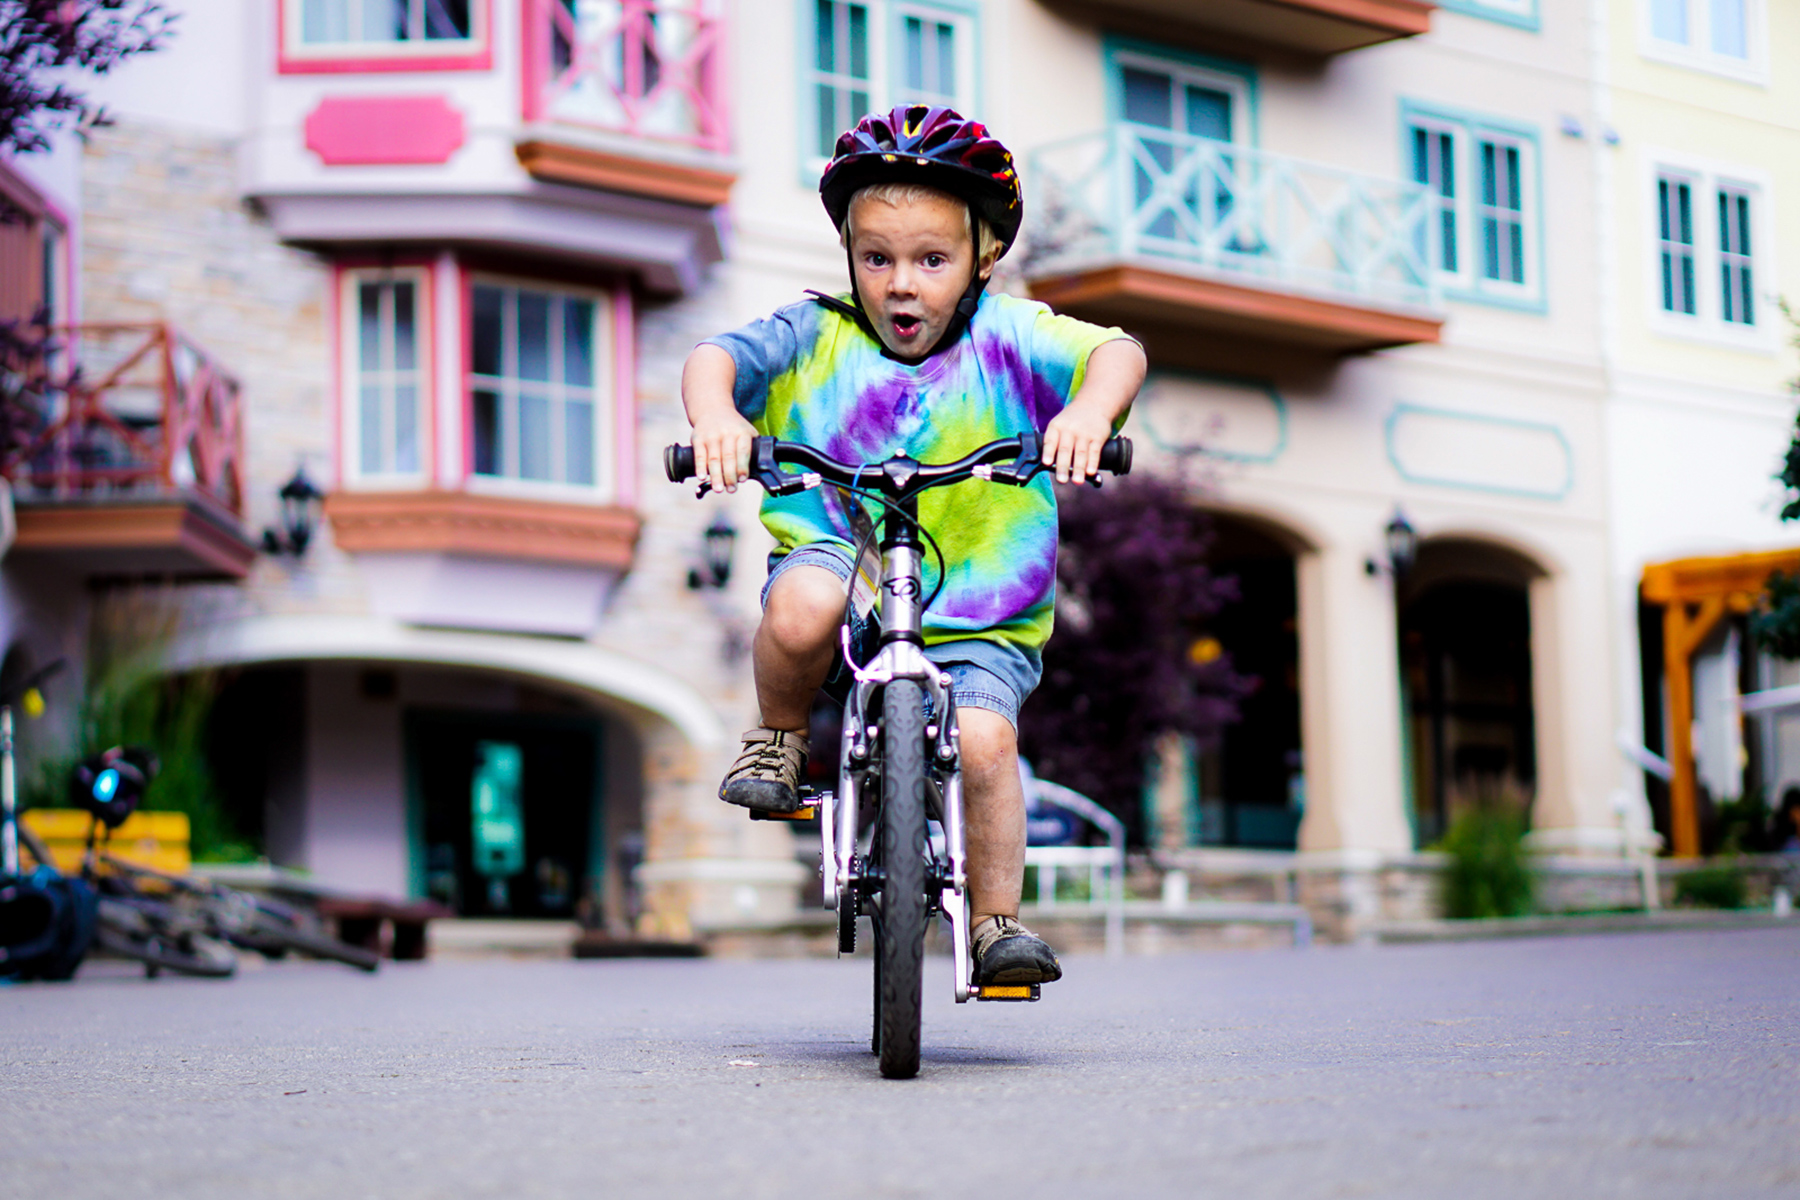 Peak of the Season - Young kid riding bike